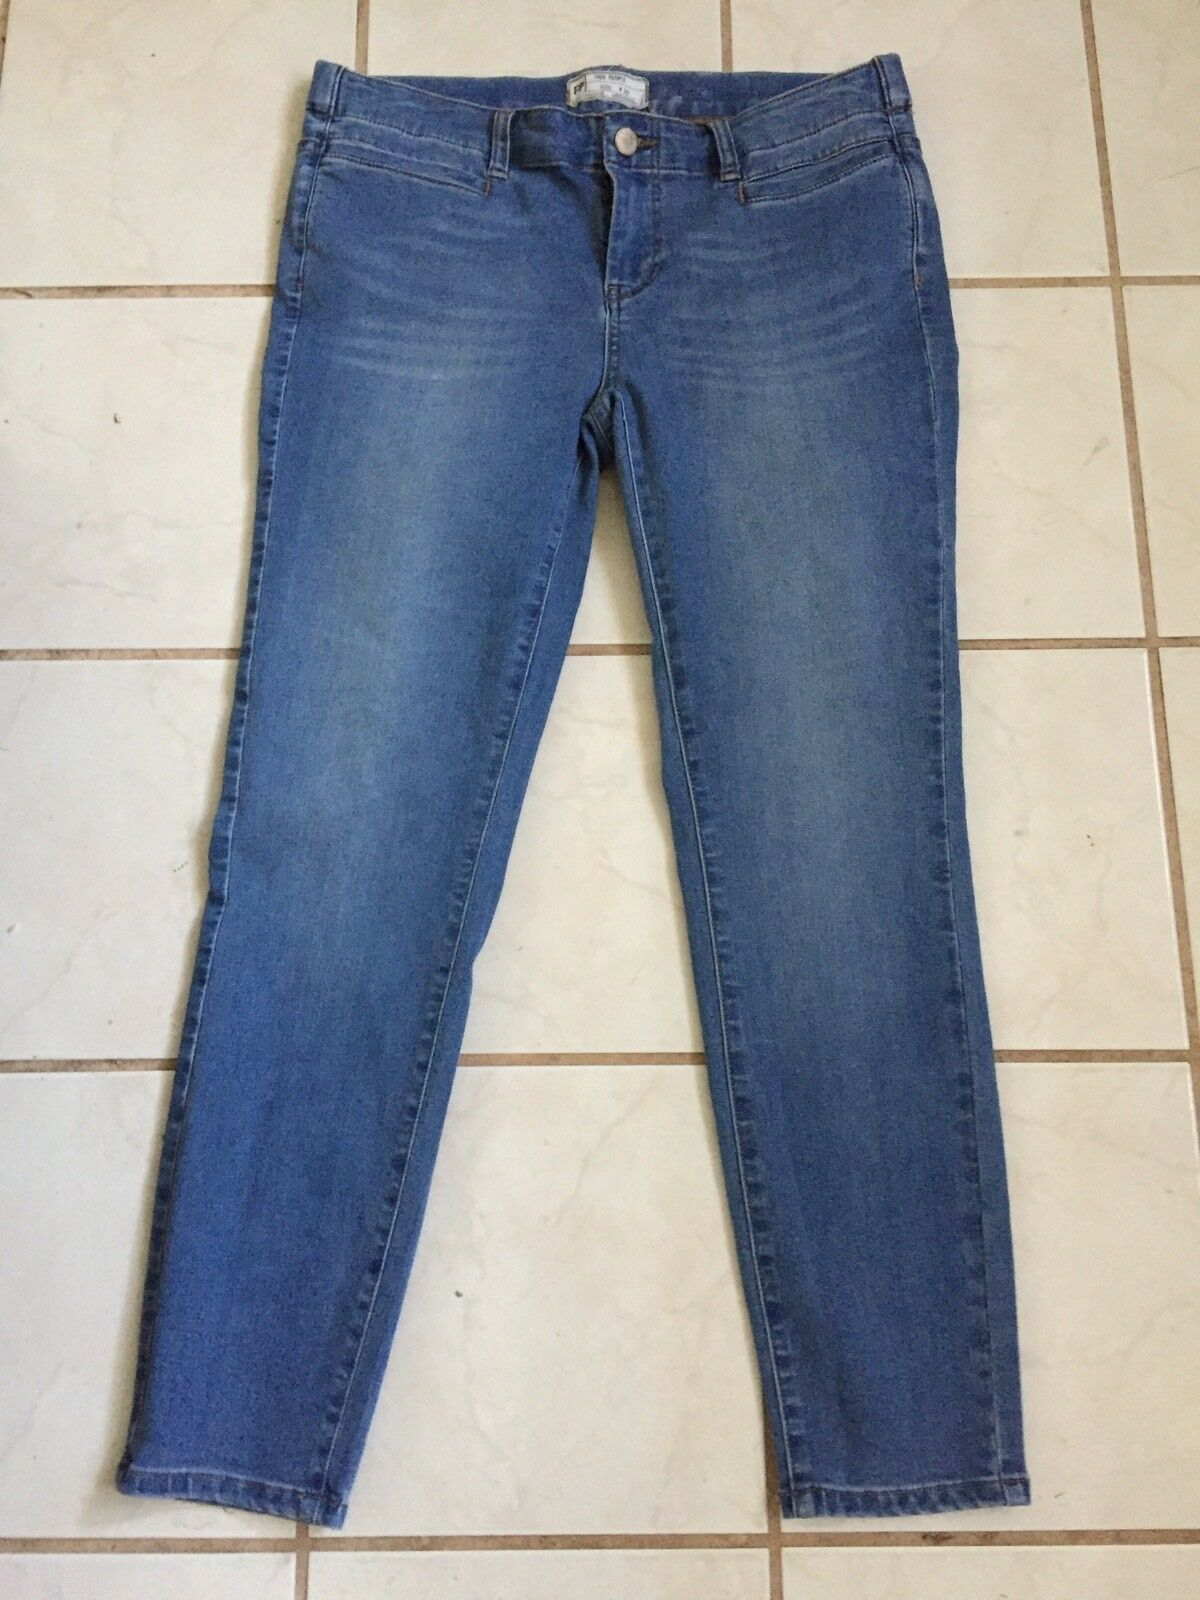 Free People Light Wash Mid Rise Ankle Length Skinny Stretch Jeans Sz 29